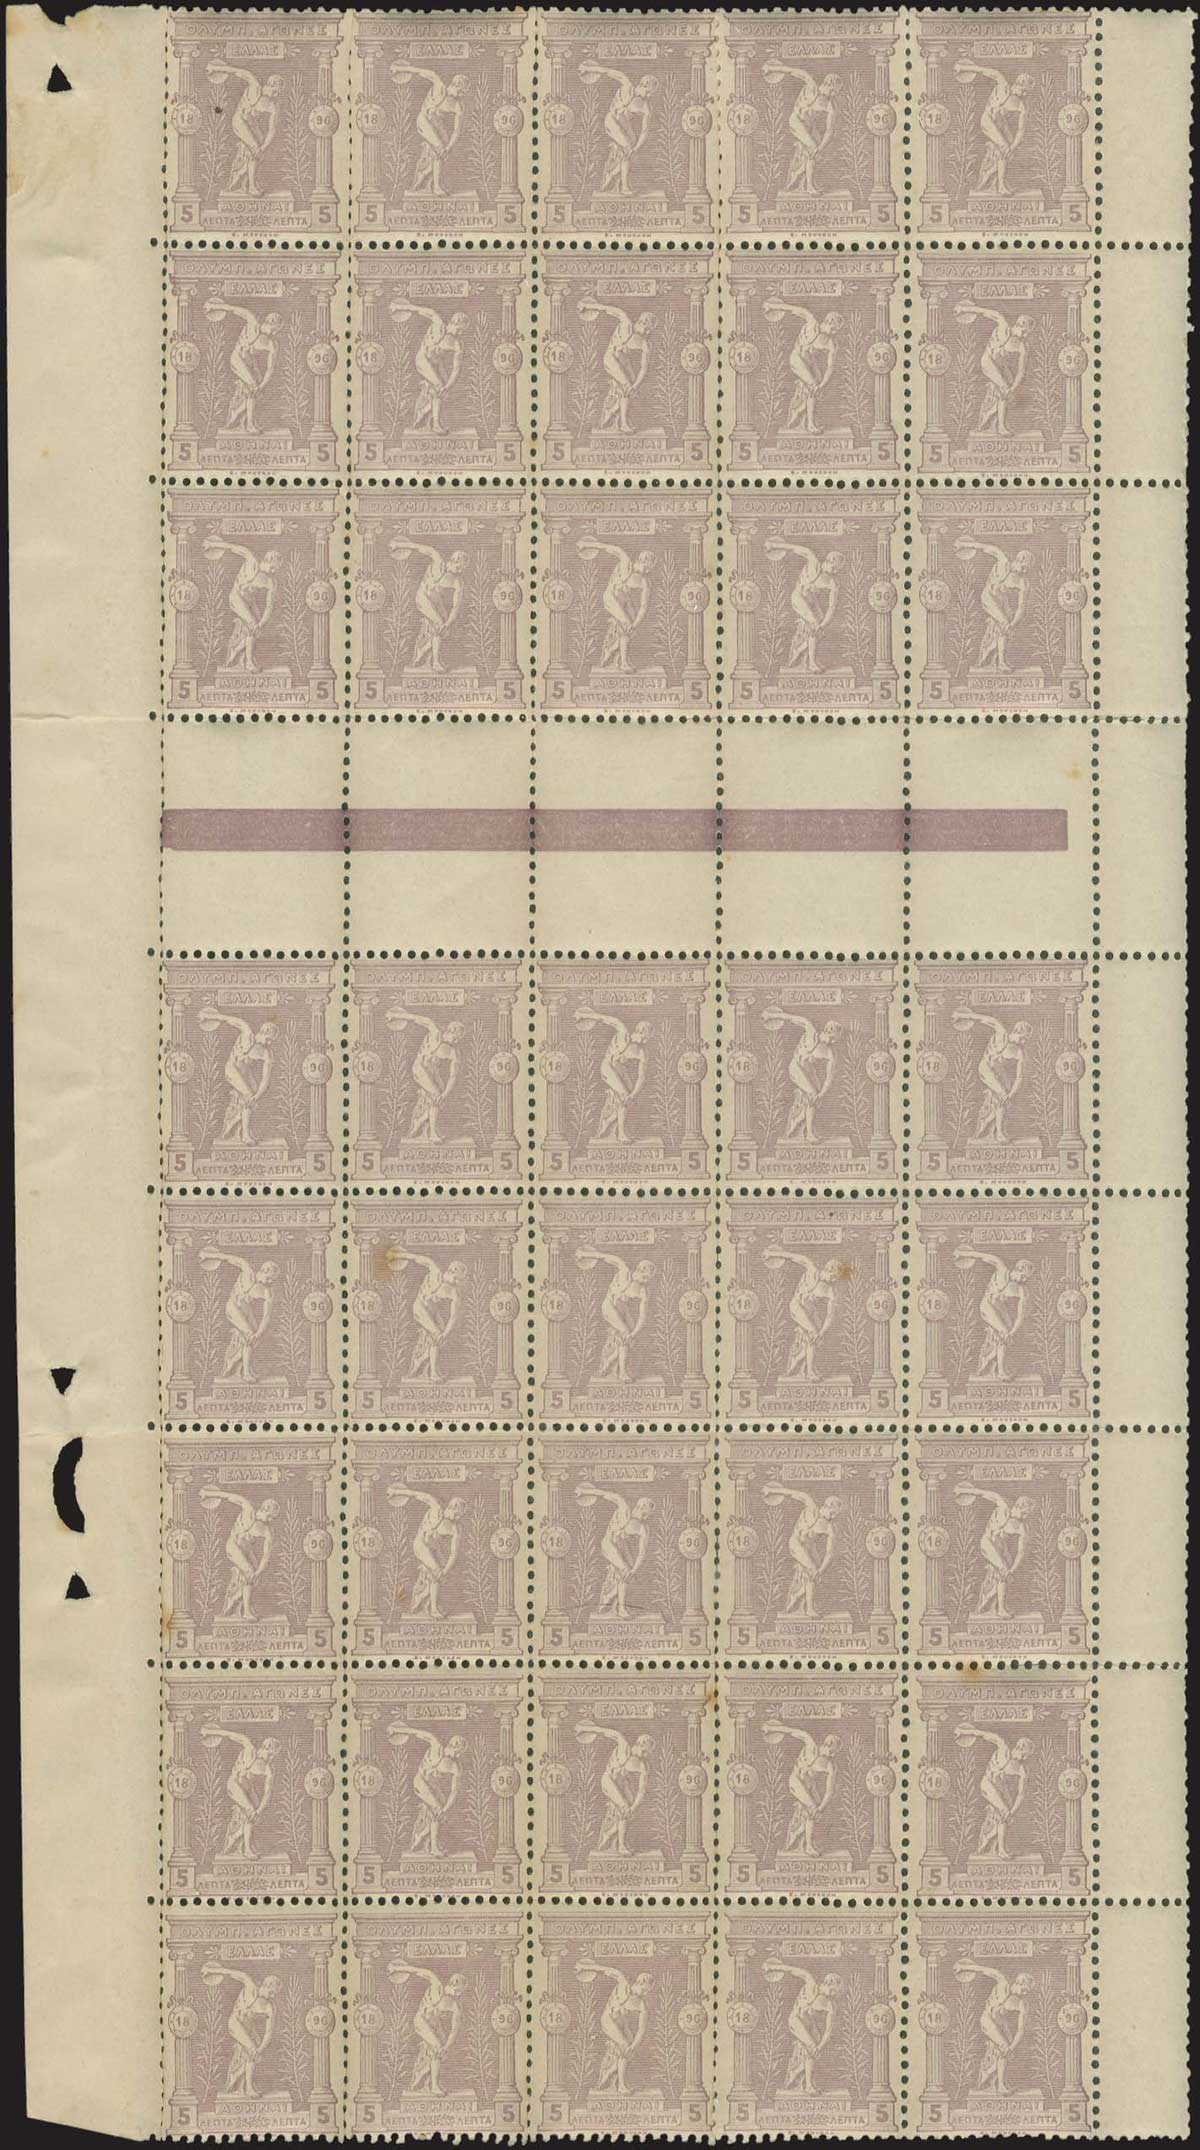 Lot 1119 - GREECE-  1896 FIRST OLYMPIC GAMES 1896 first olympic games -  A. Karamitsos Public Auction 599 General Stamp Sale